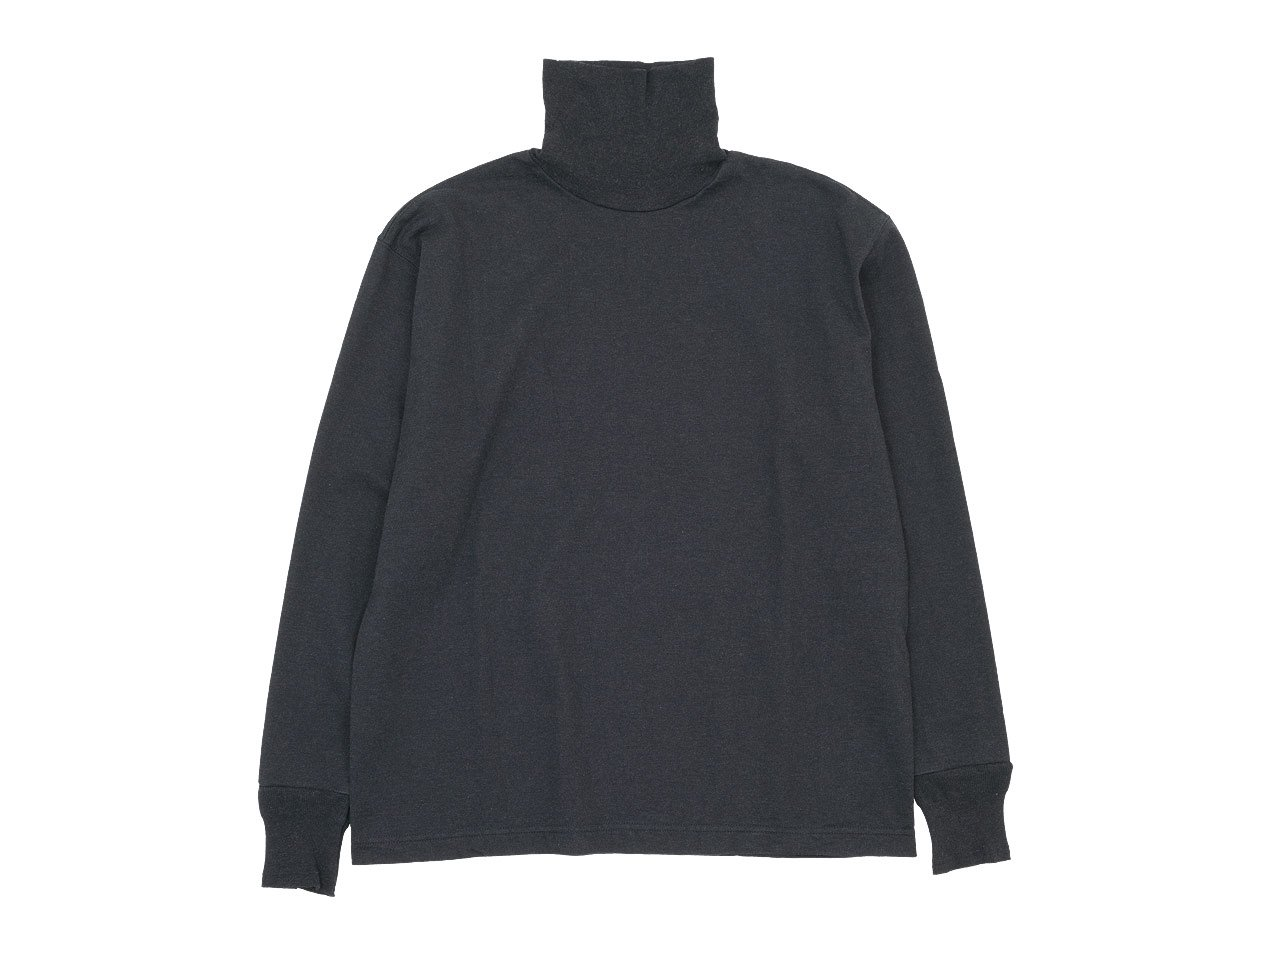 TOUJOURS Turtle Neck Pullover HEATHER BLACK 【LM31XC09】